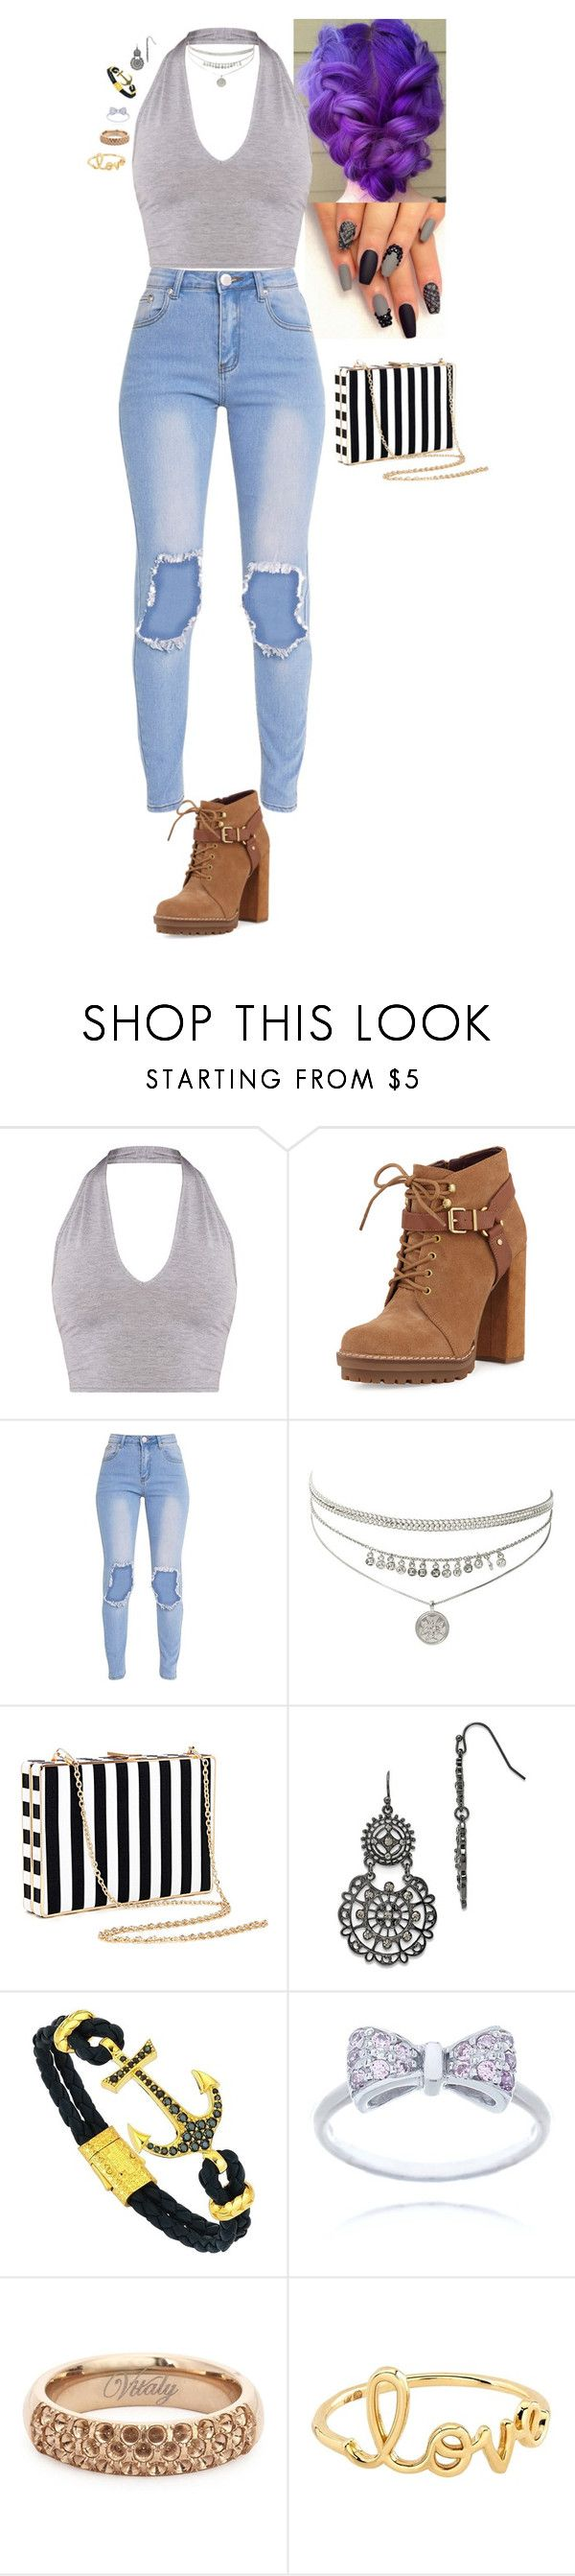 """Untitled #274"" by stinze on Polyvore featuring BCBGeneration, 1928, Vitaly and Sydney Evan"